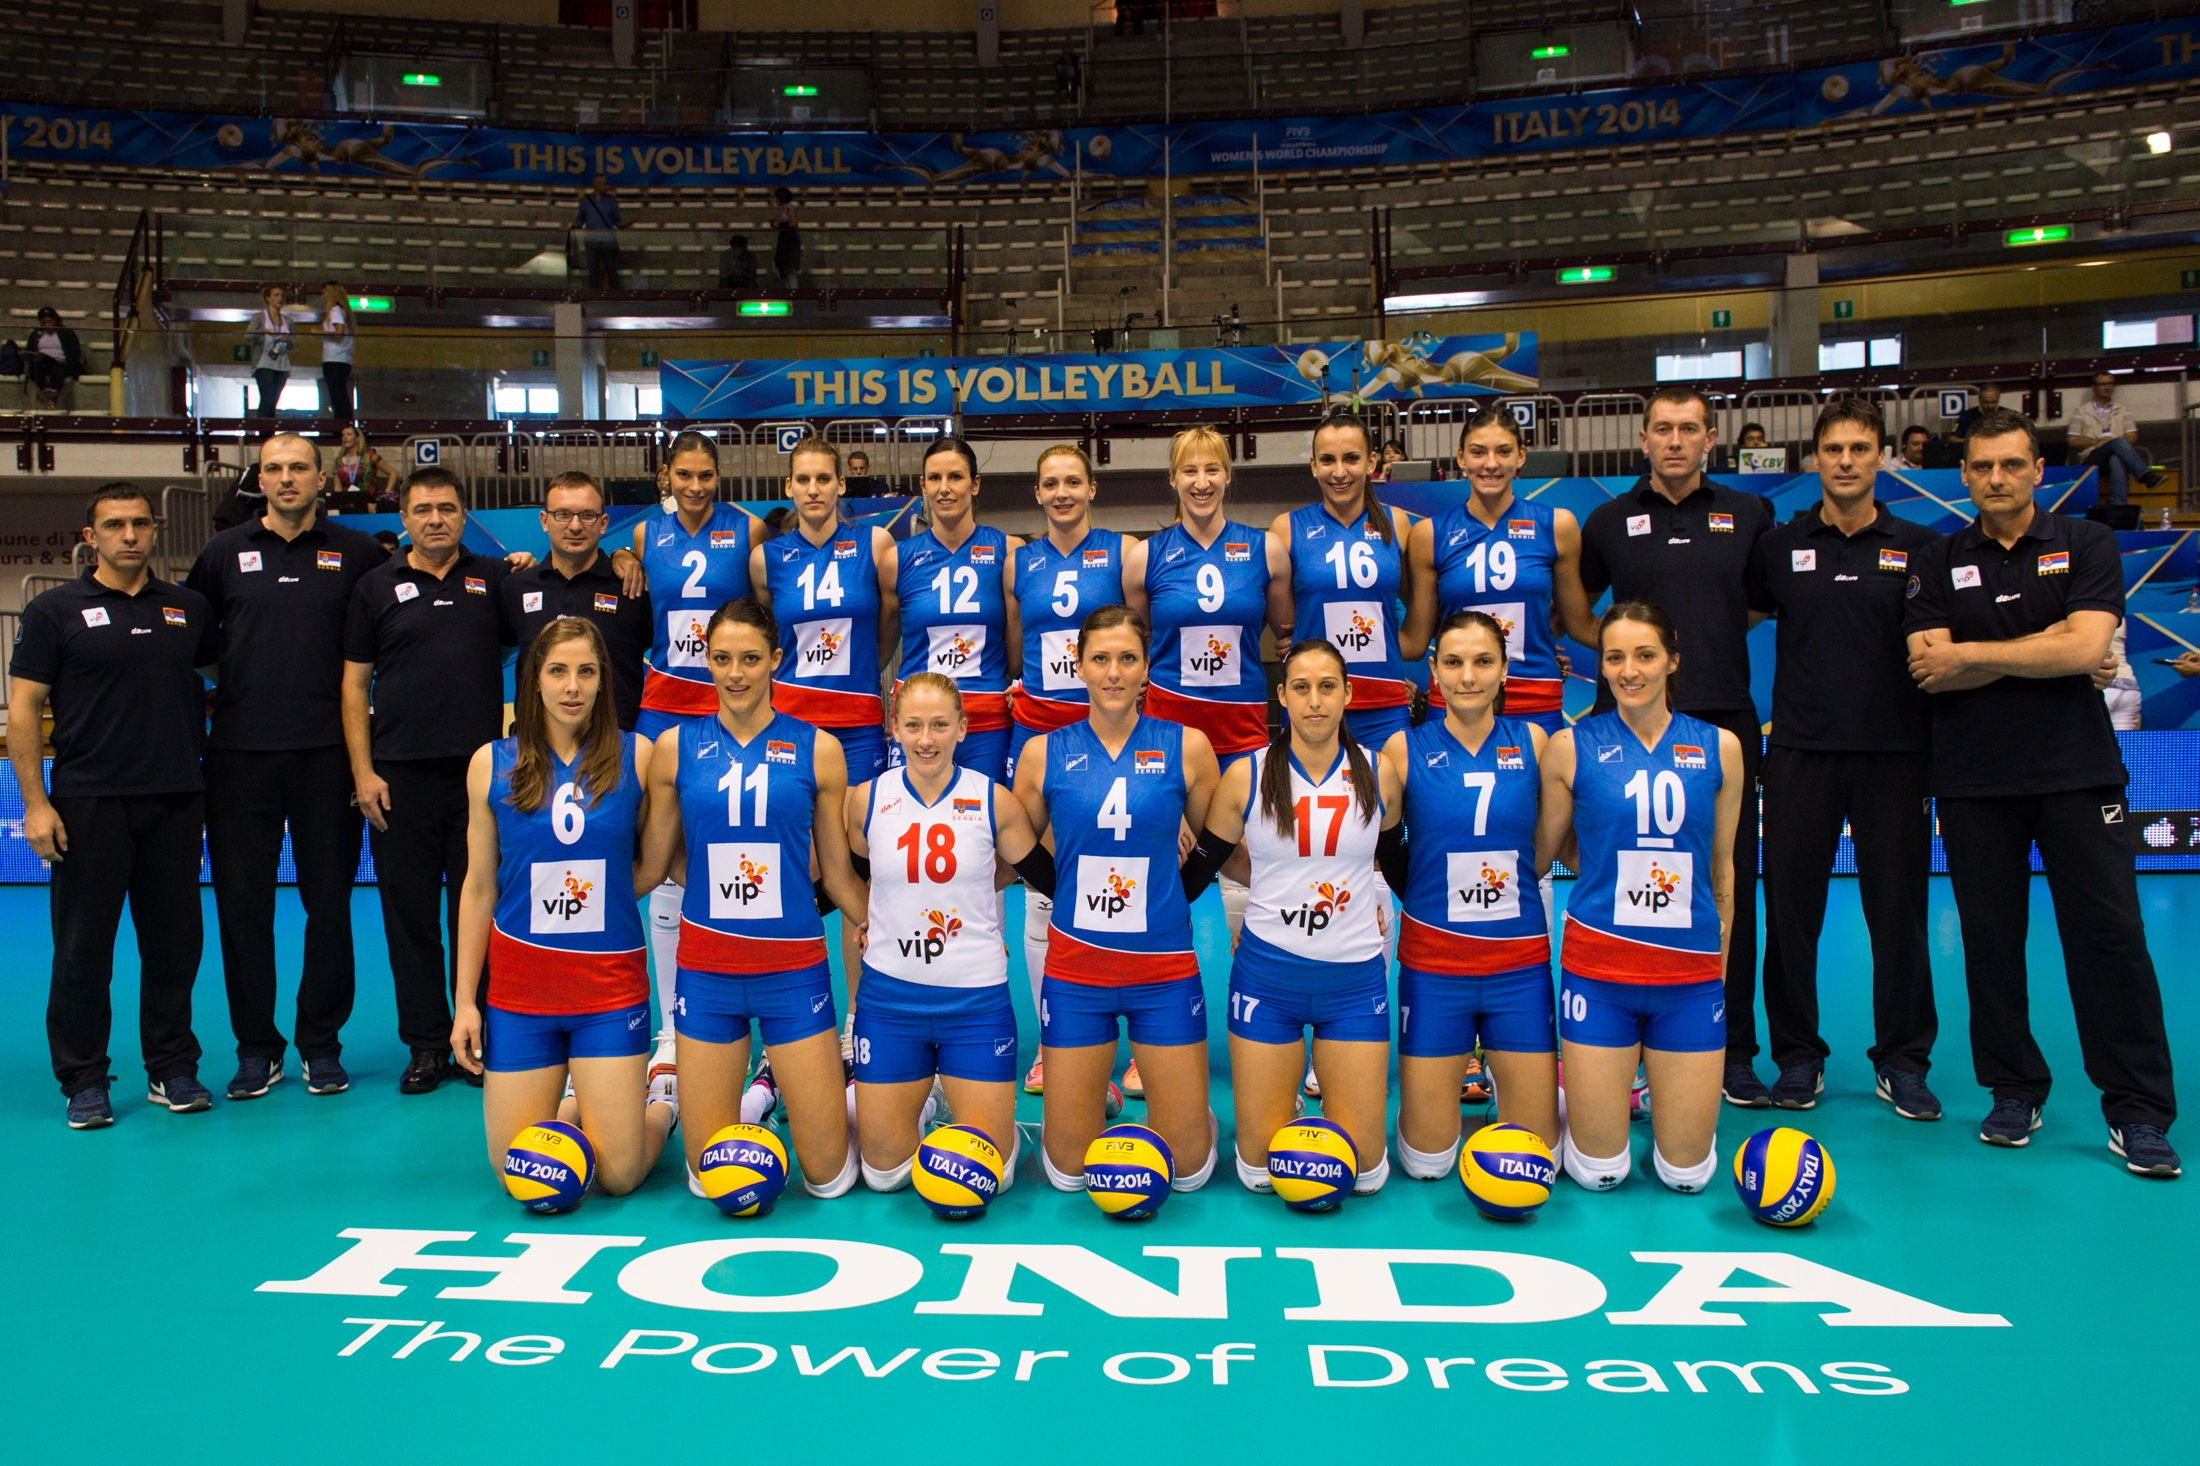 Seniorke 7 Na Svetskom Prvenstvu U Italiji Senior Women Of Serbia 7th Place At The World Championship In Women Volleyball Volleyball World Championship